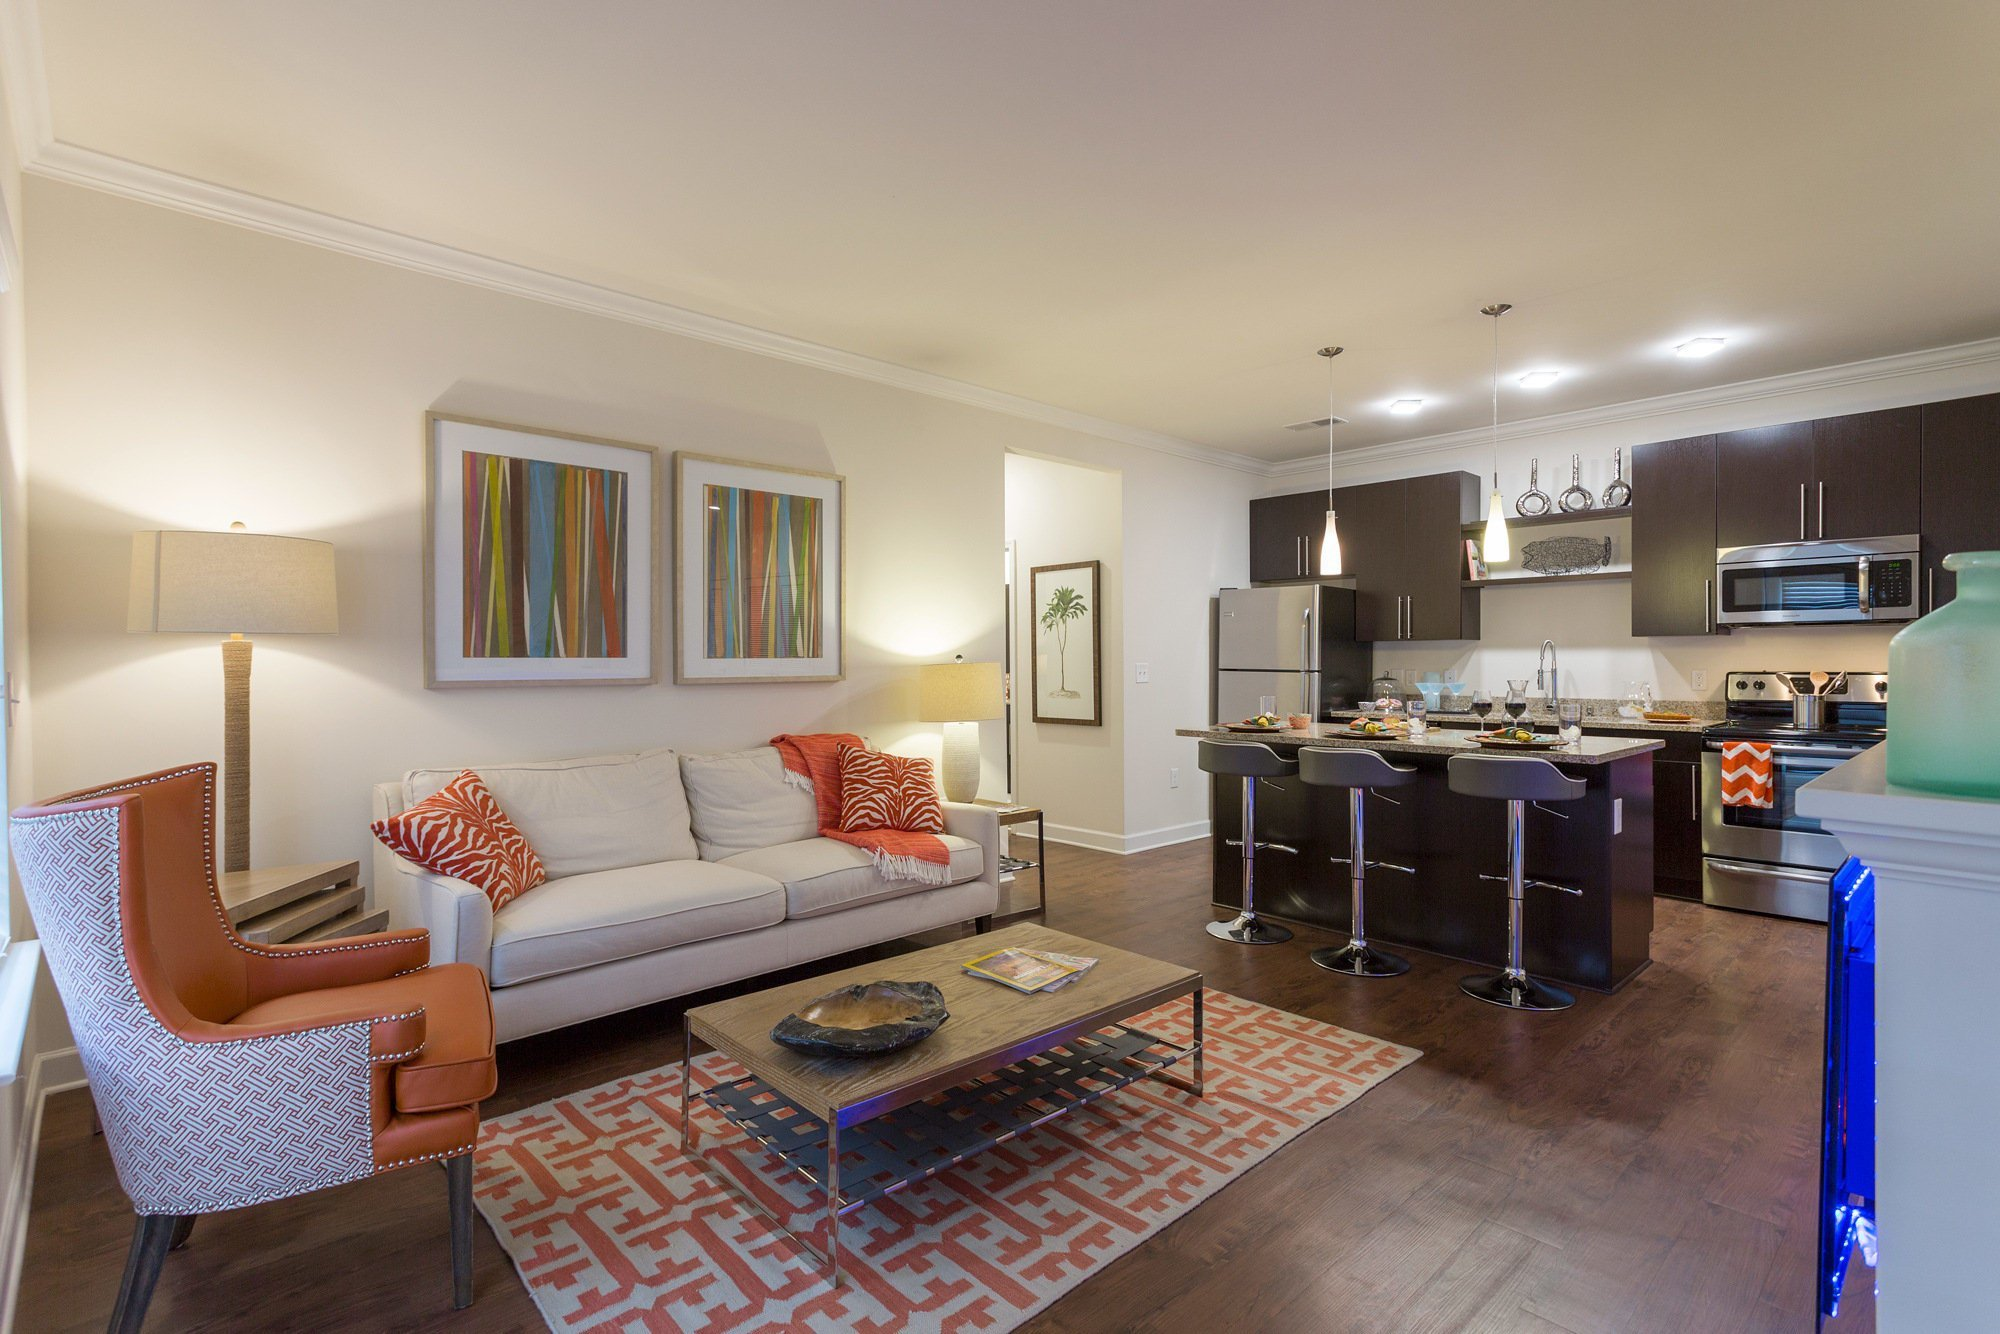 Best 3 Bedroom Apartments For Rent Near Me House Info With Pictures